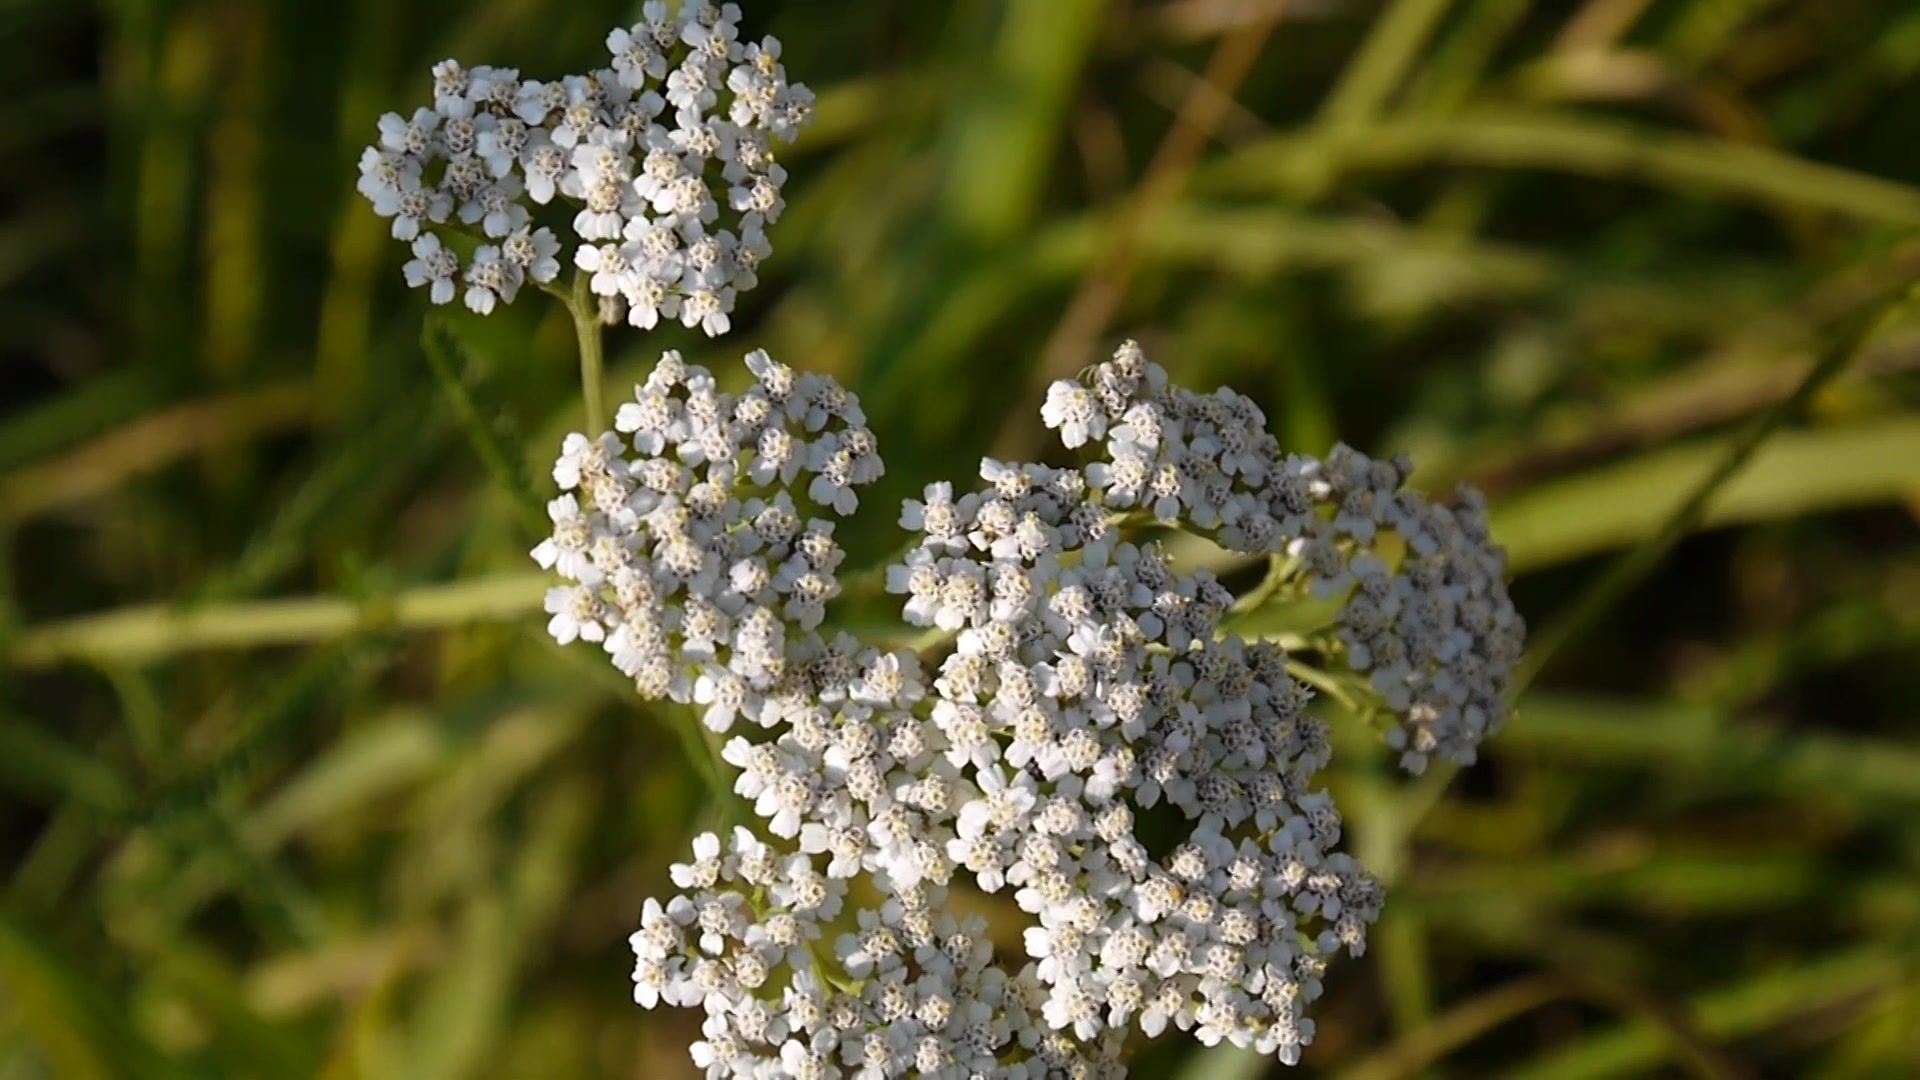 Yarrow Flower Close Up Achillea Millefolium Medical Herb Medicine Plant In Stock Footage Achillea Millefolium C Yarrow Flower Medical Herbs Flower Close Up